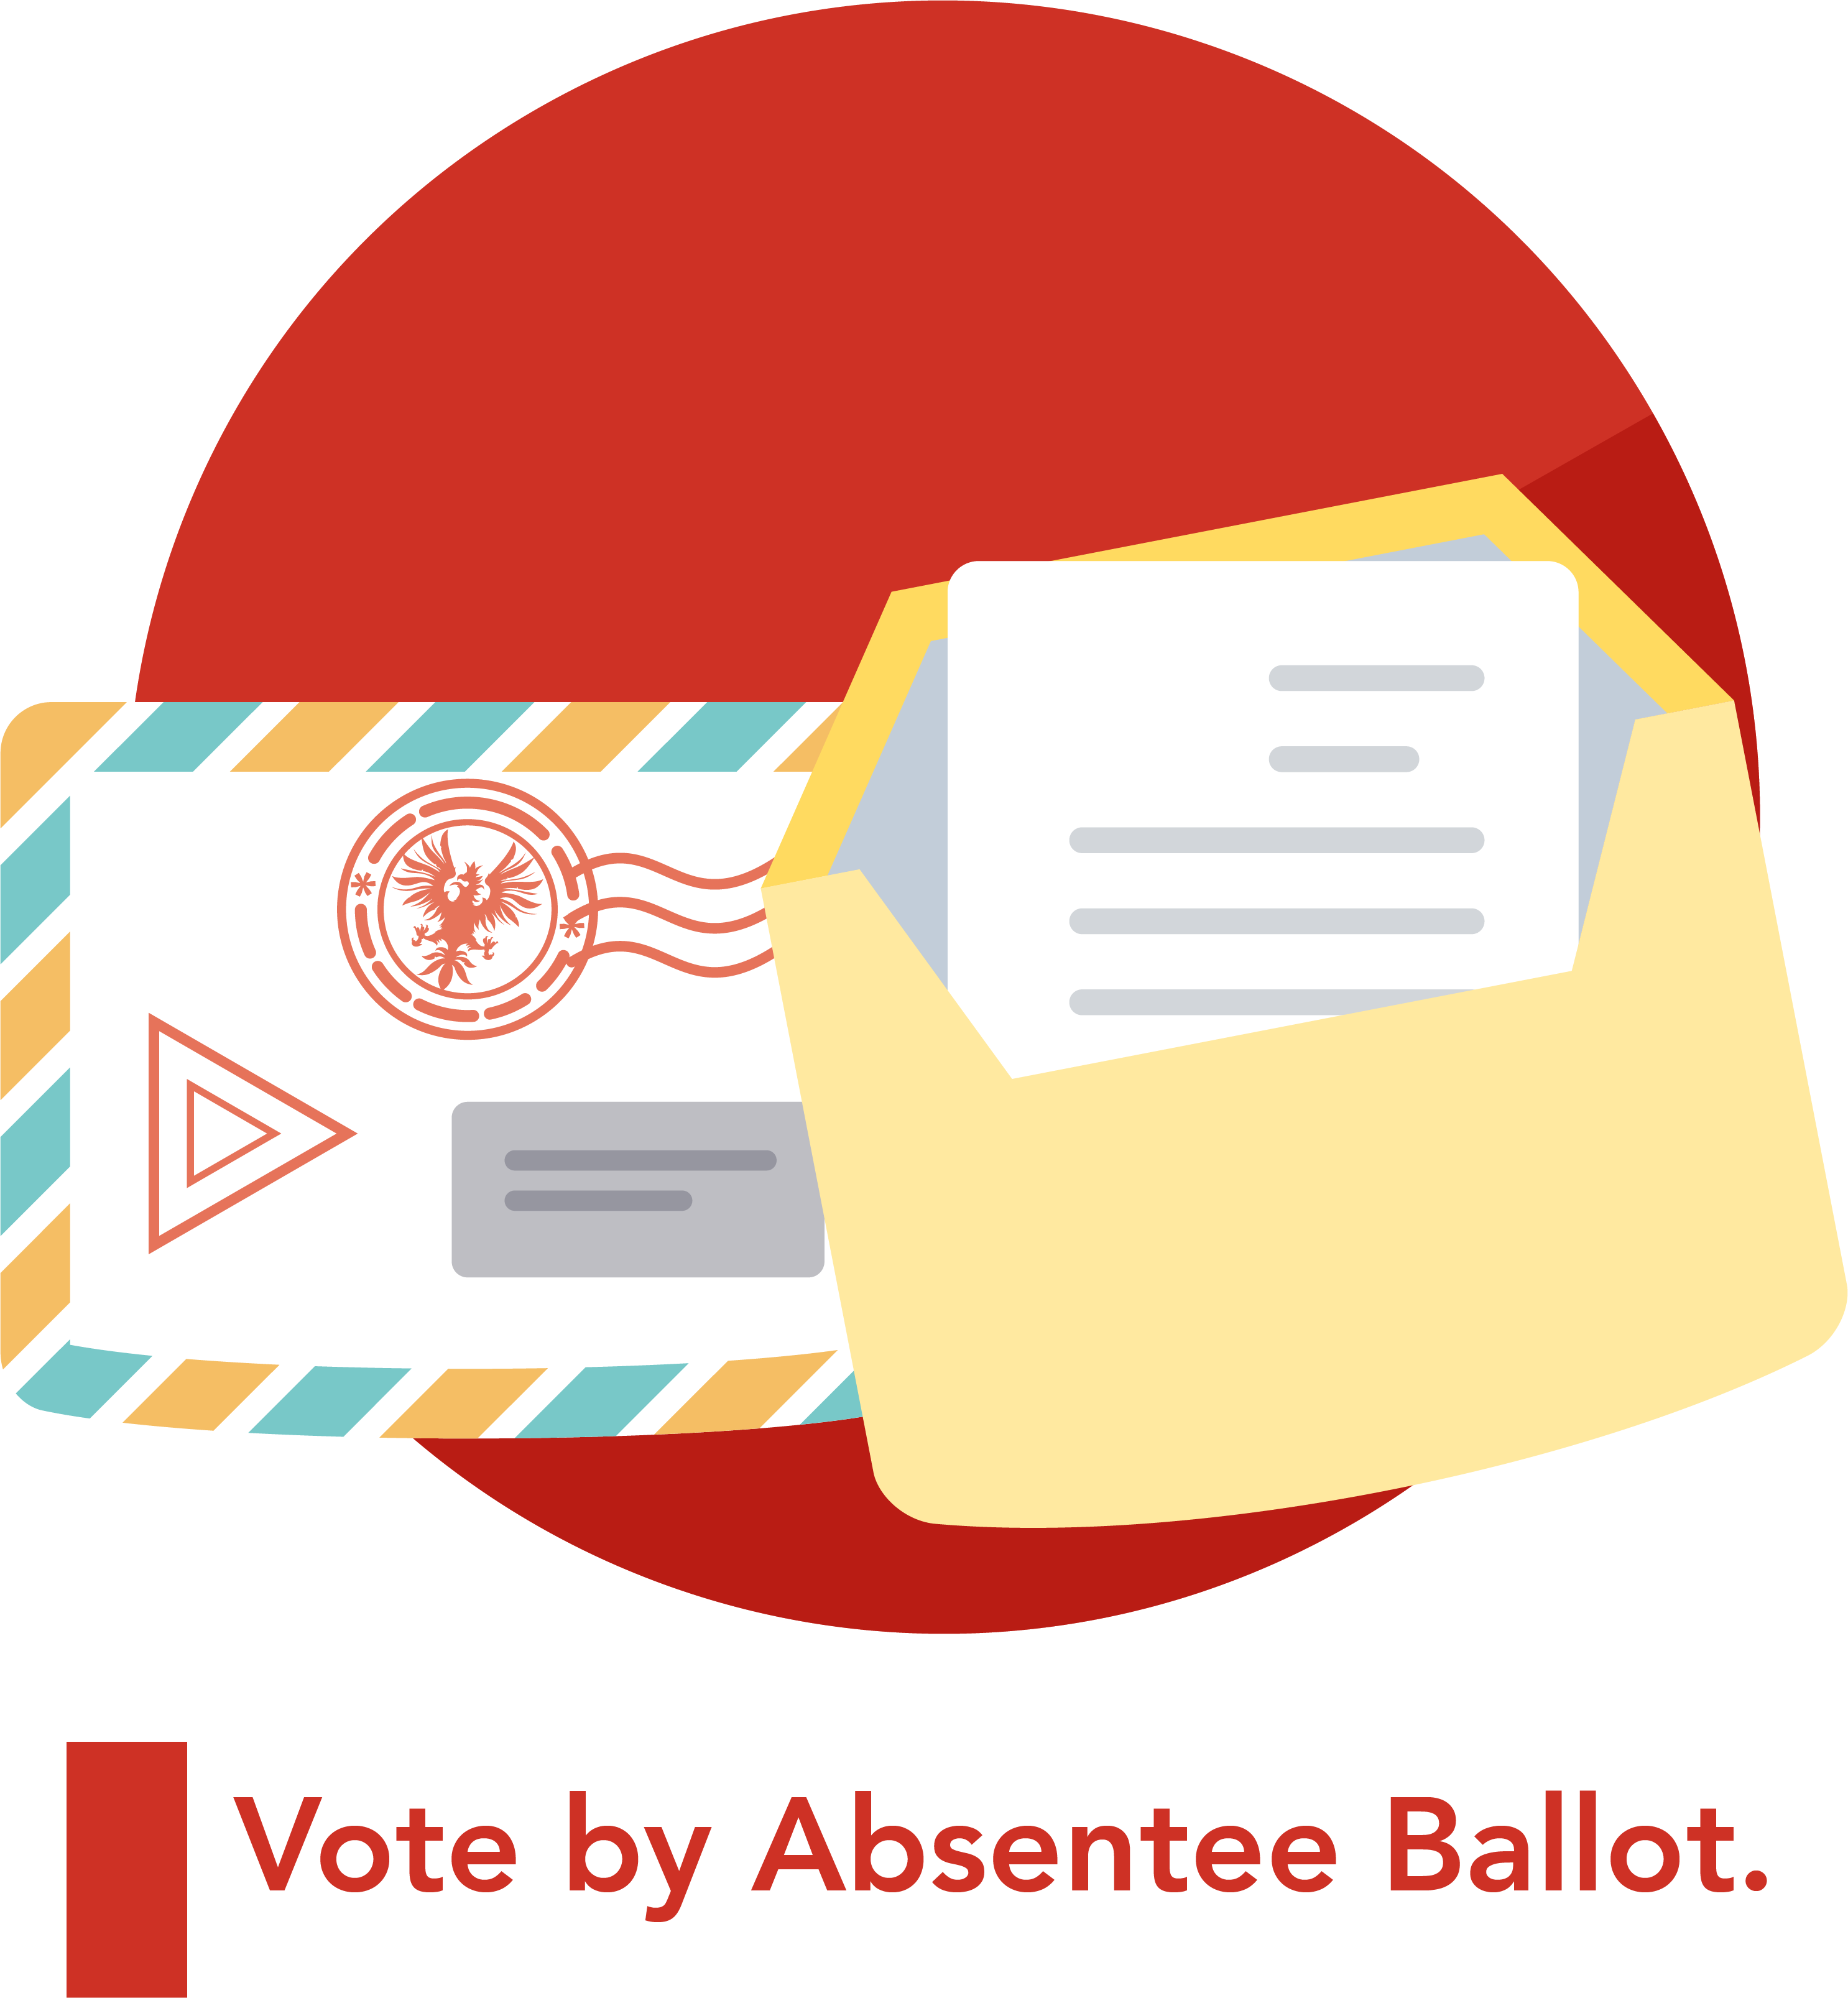 A graphic with an envelope and vote representing voting absentee